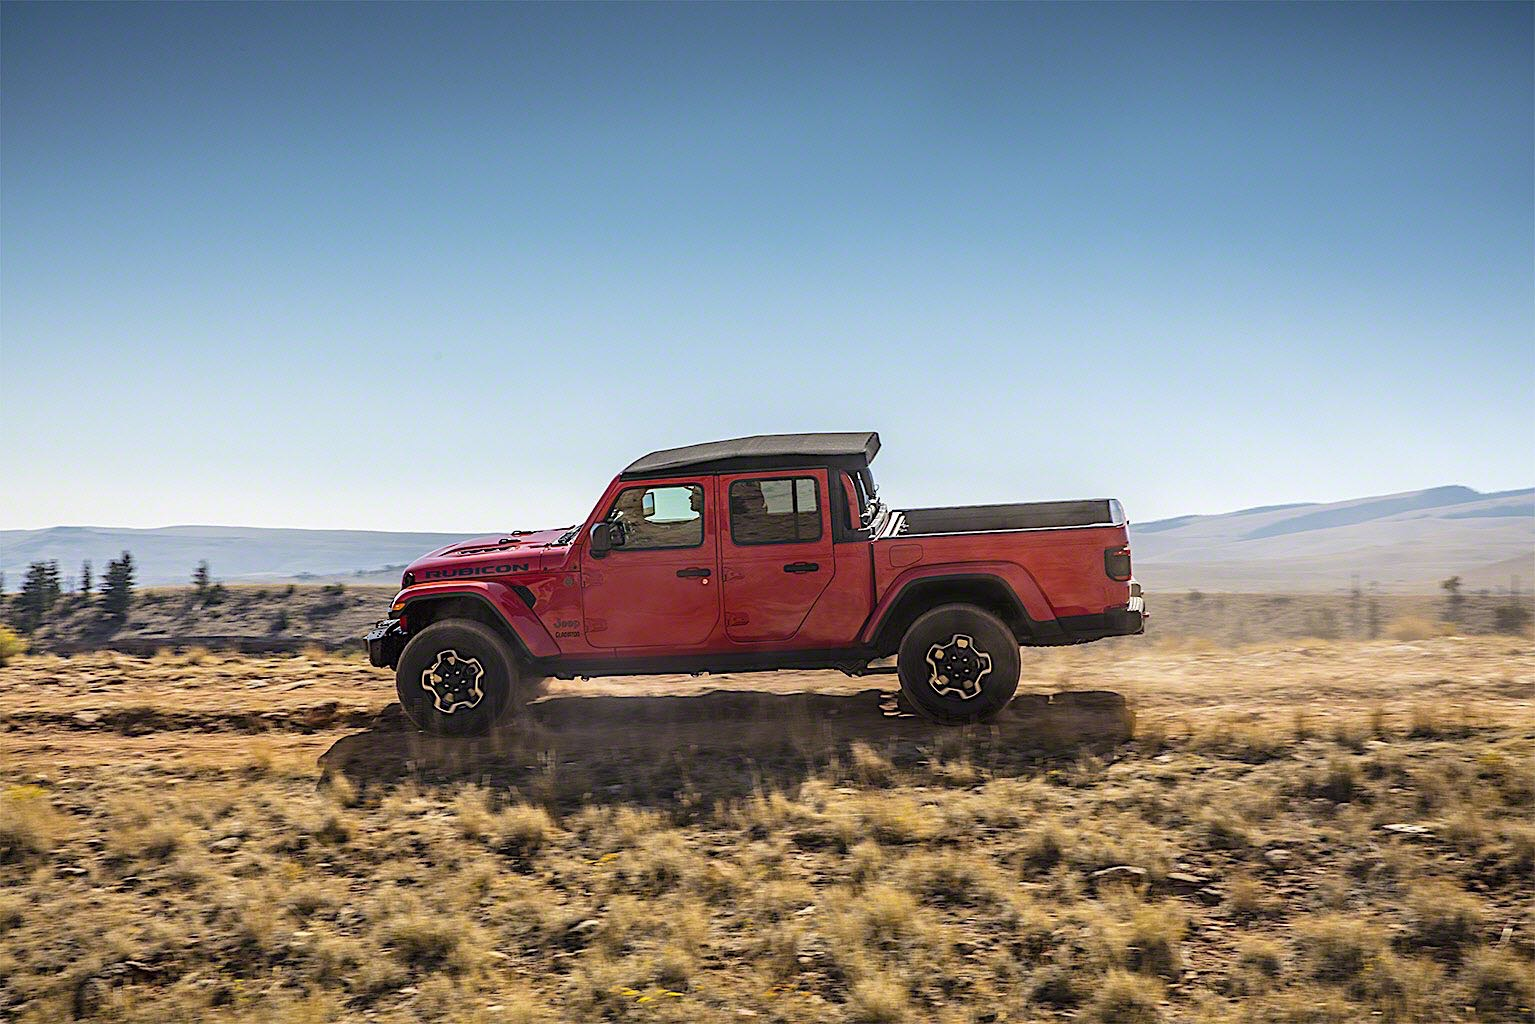 2020 Jeep Gladiator Pickup Truck Everything You Need To Know And